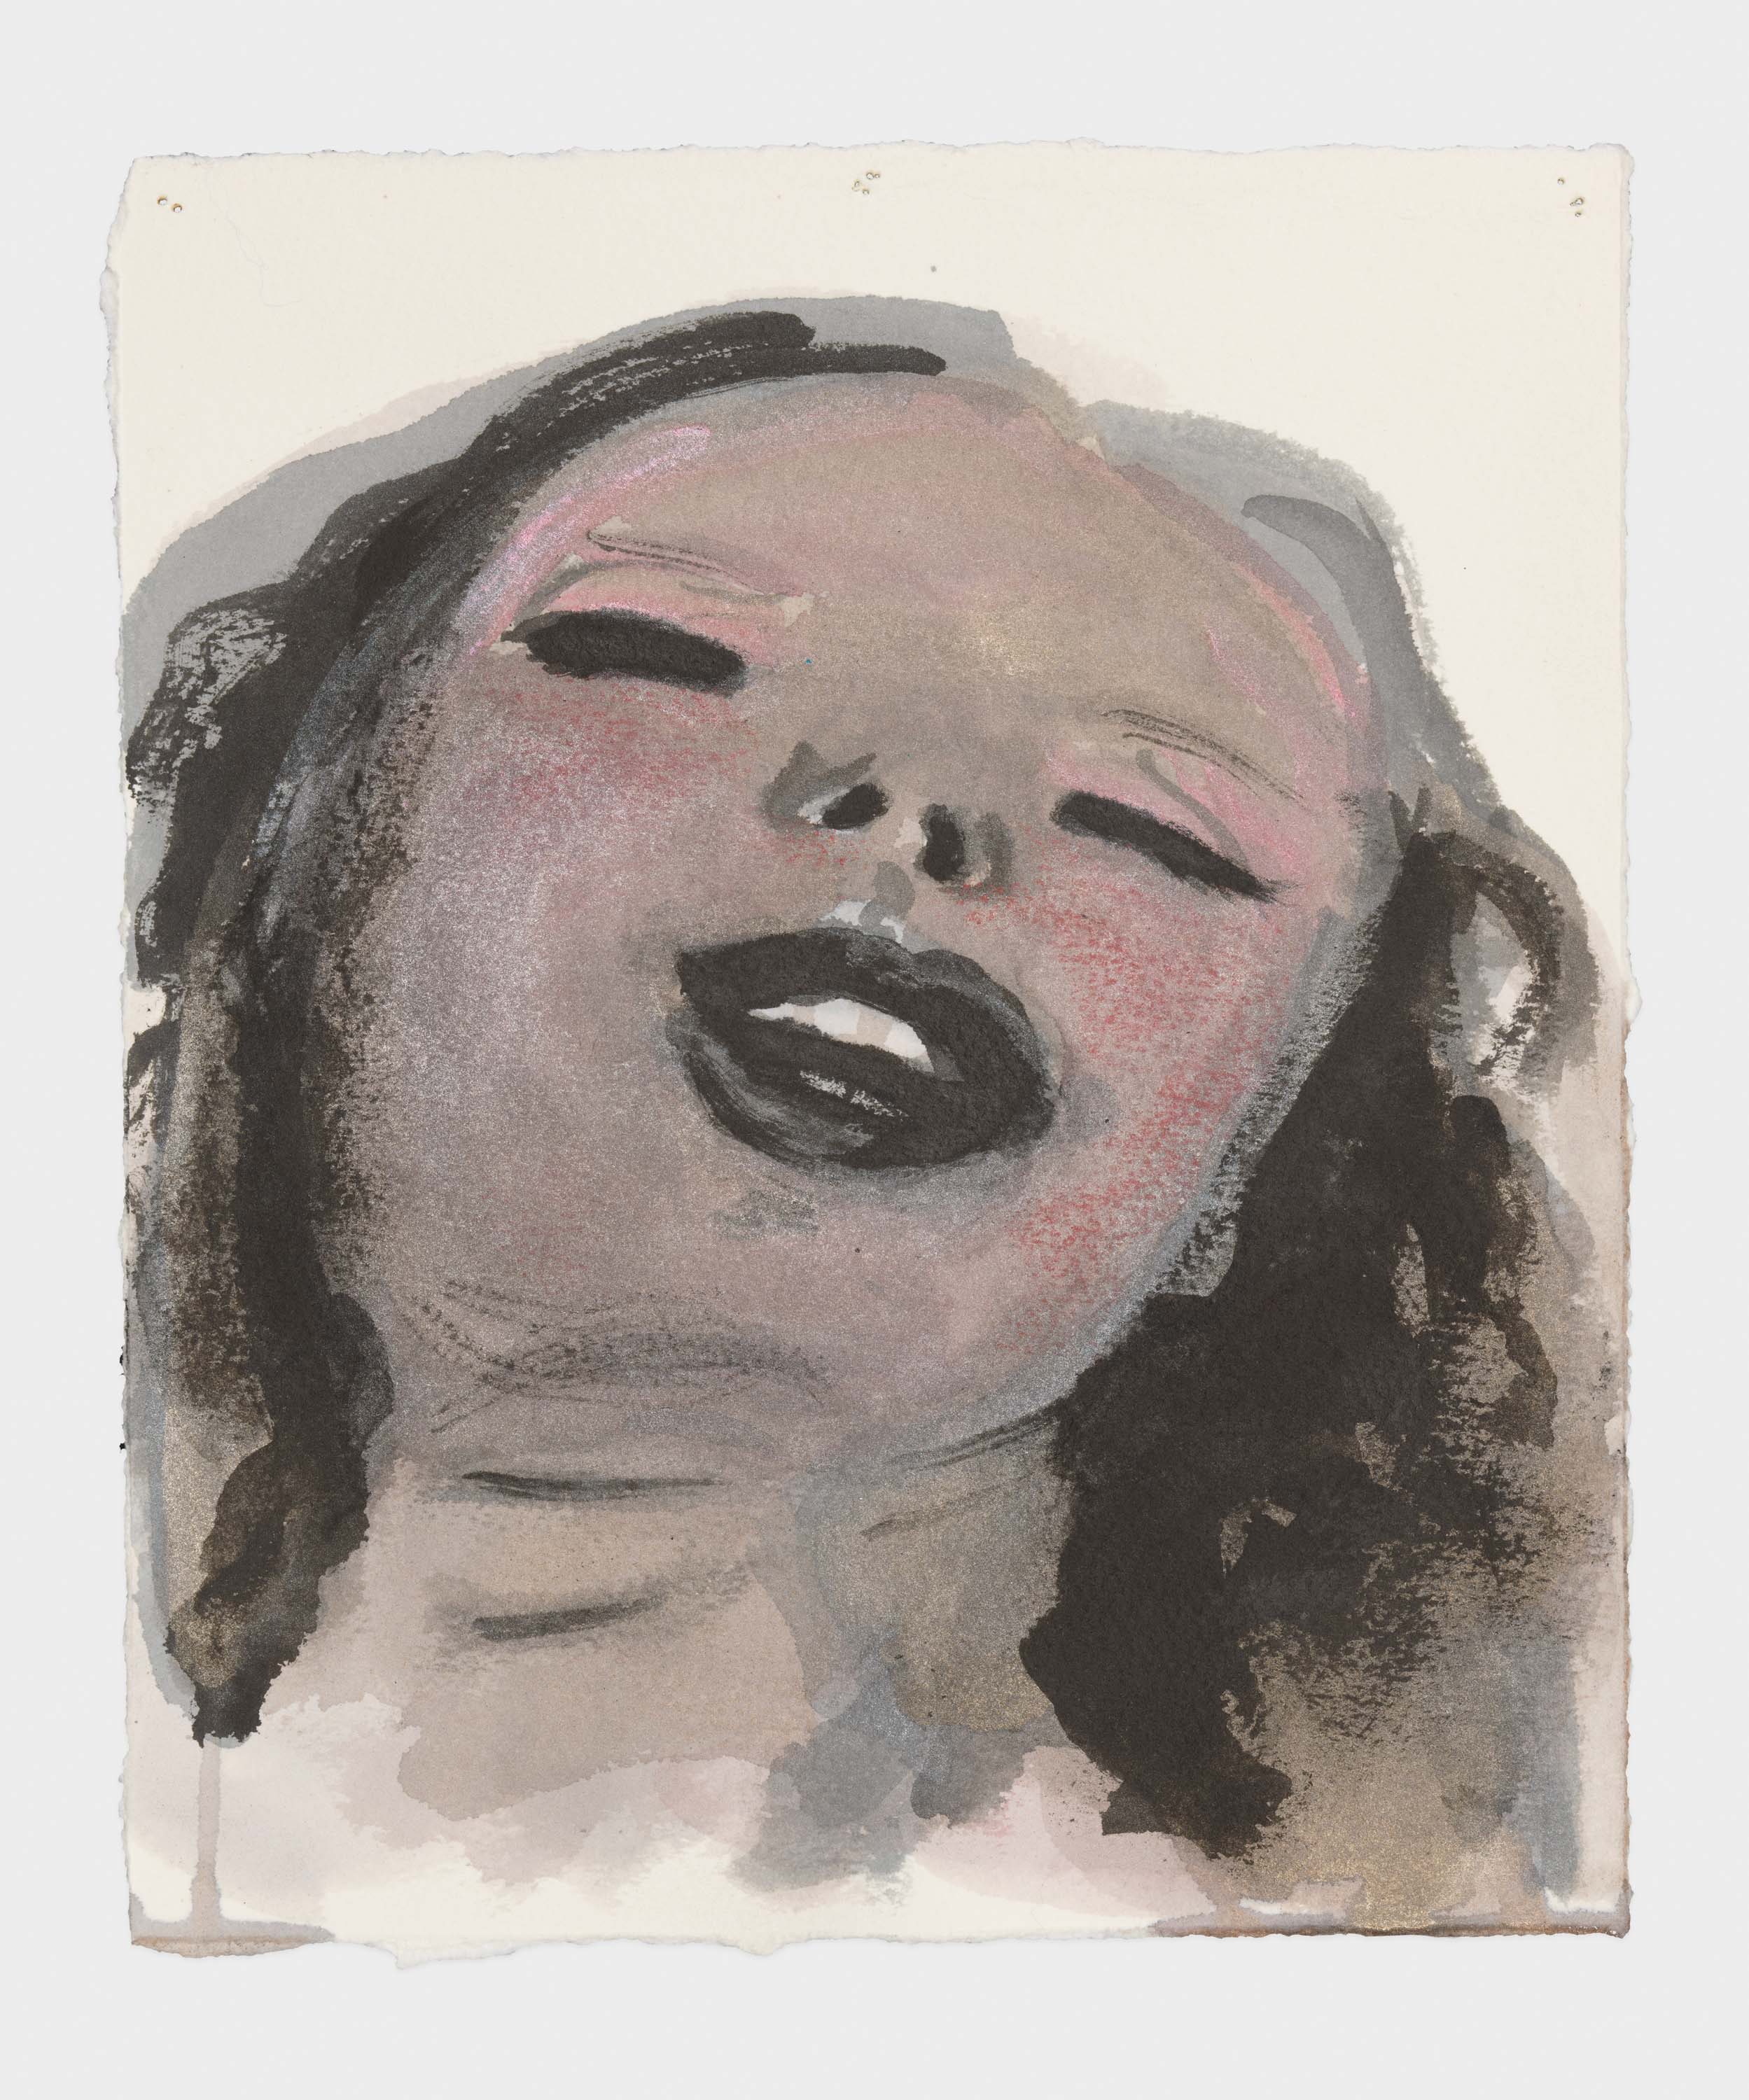 "Marlene Dumas, ""Venus praises the pleasures of love"", 2015-2016 Ink wash and metallic acrylic on paper 9 1/4 x 8 inches 23.5 x 20.3 cm. Exposition ""Myths & Mortals"", Galerie David Zwirner, New-York"